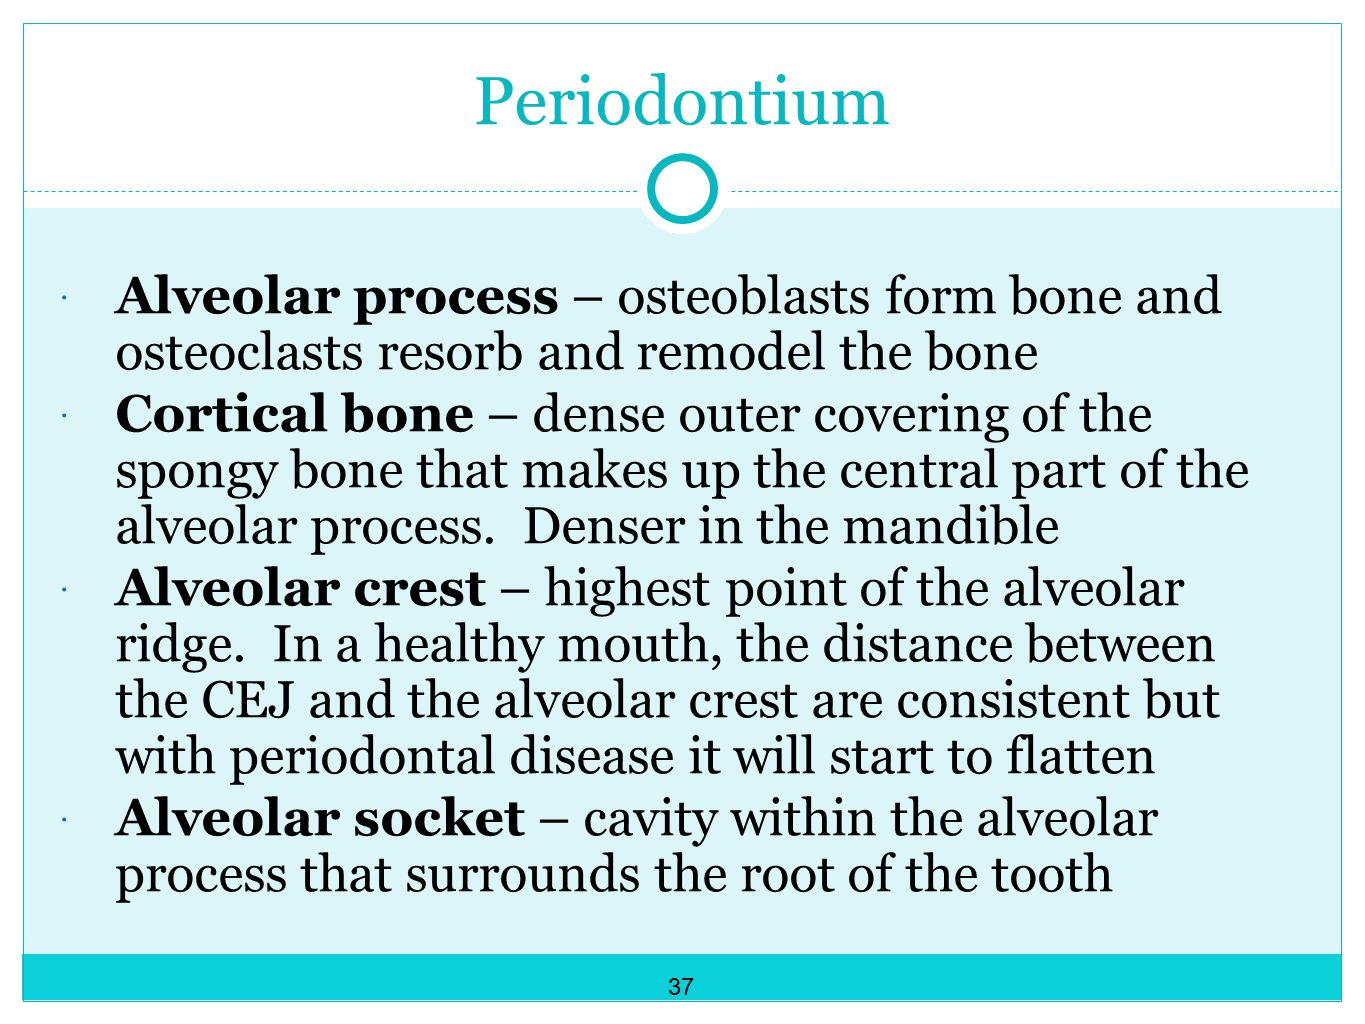 Periodontium Alveolar process – osteoblasts form bone and osteoclasts resorb and remodel the bone.